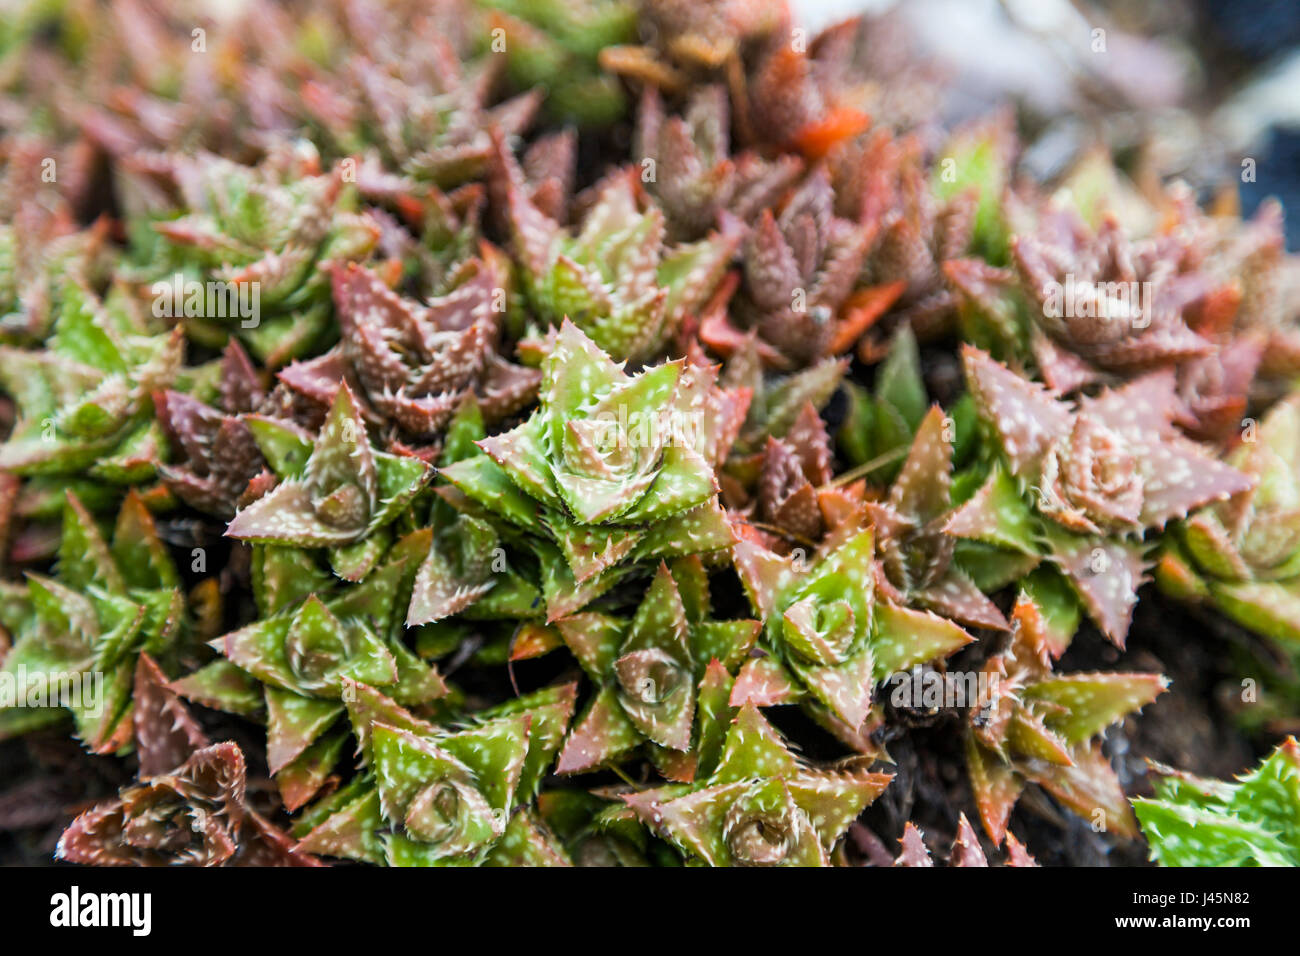 Close-up of colorful succulents. - Stock Image